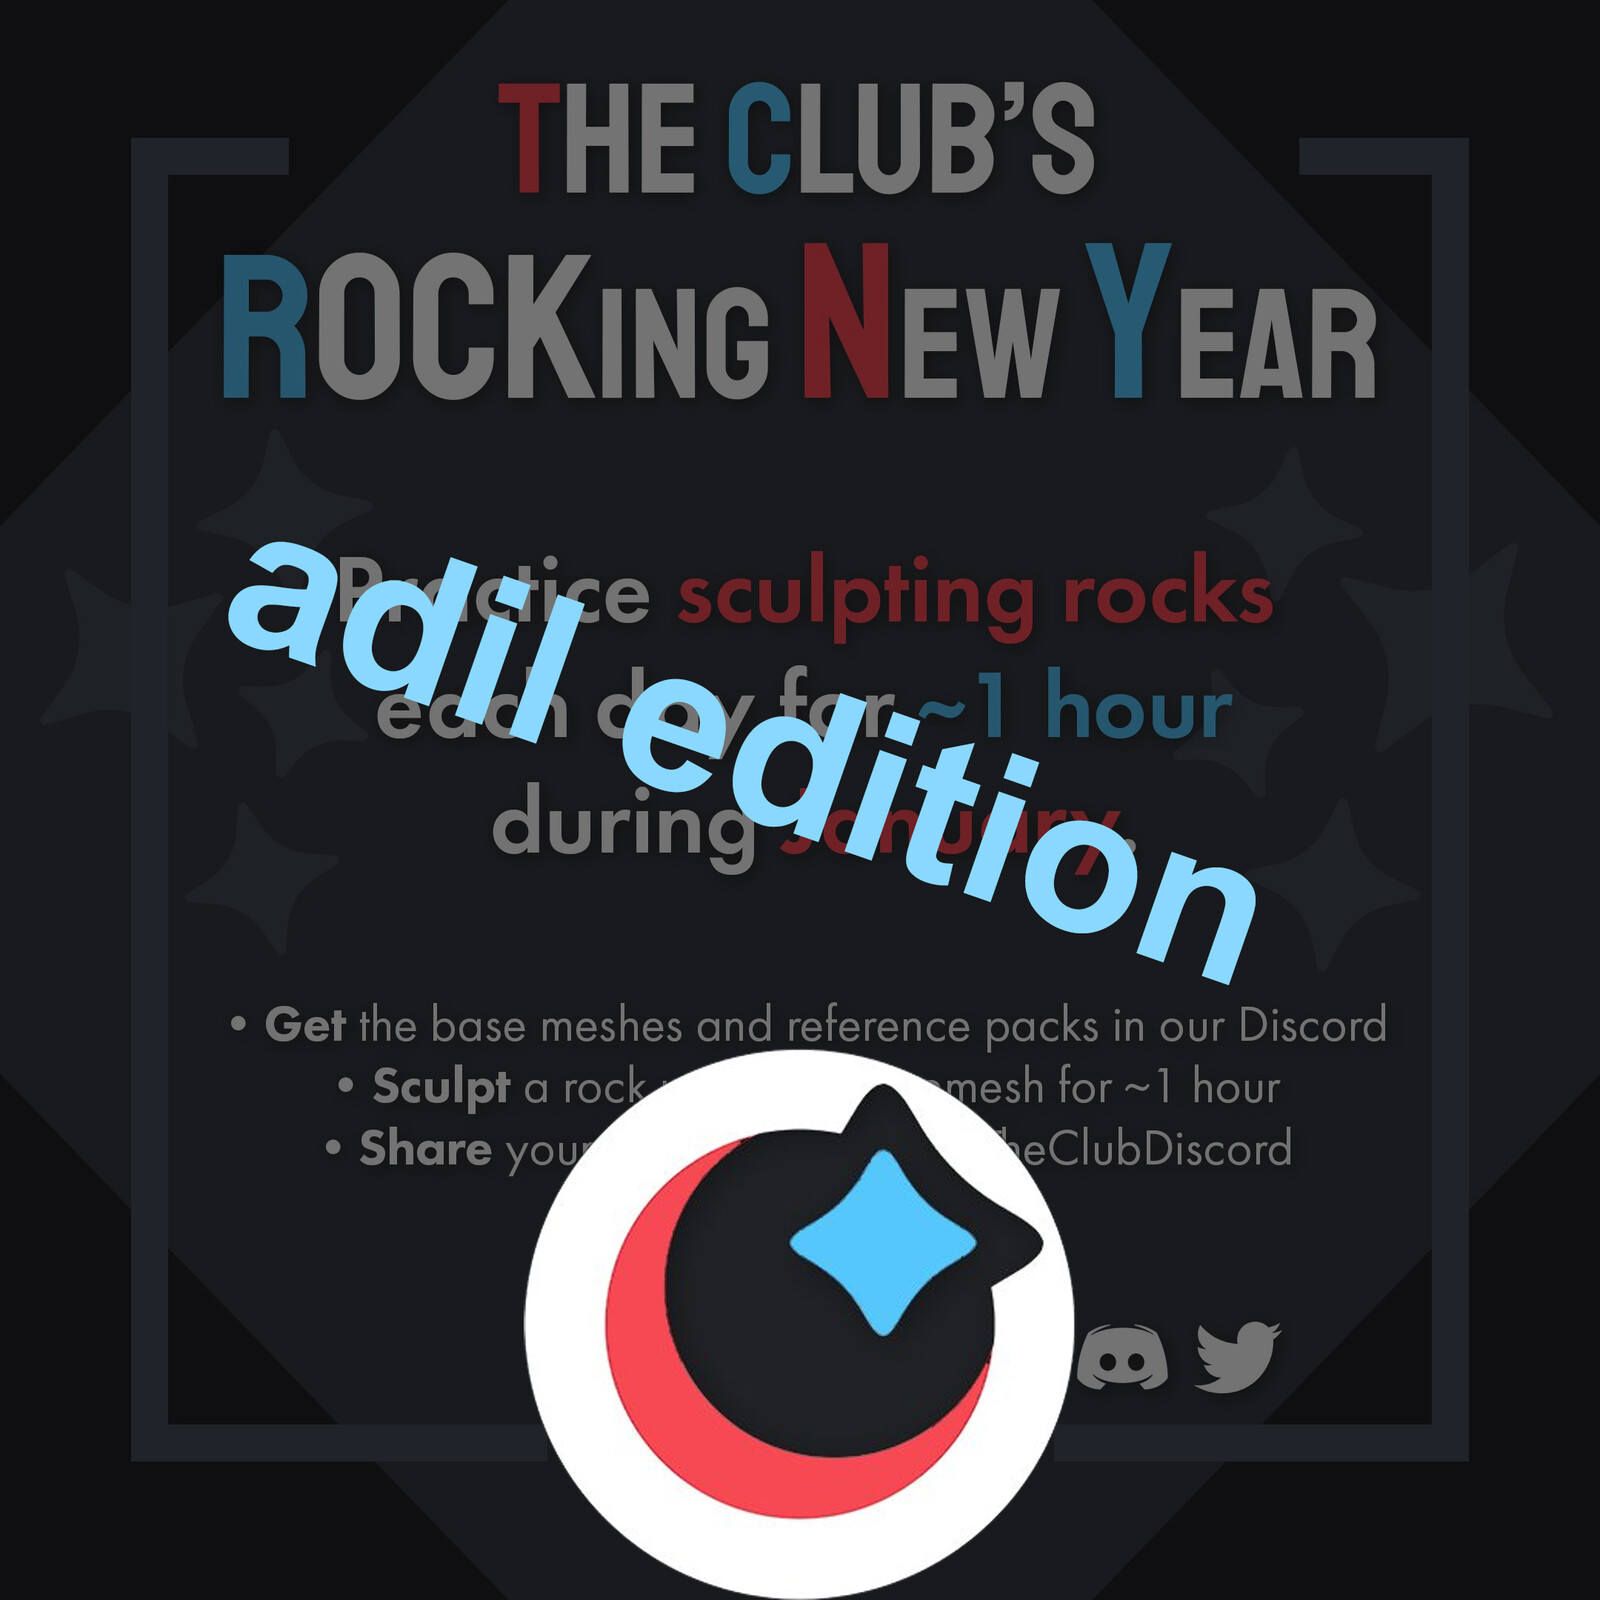 The Clubs Rocking New Year, Adil edition